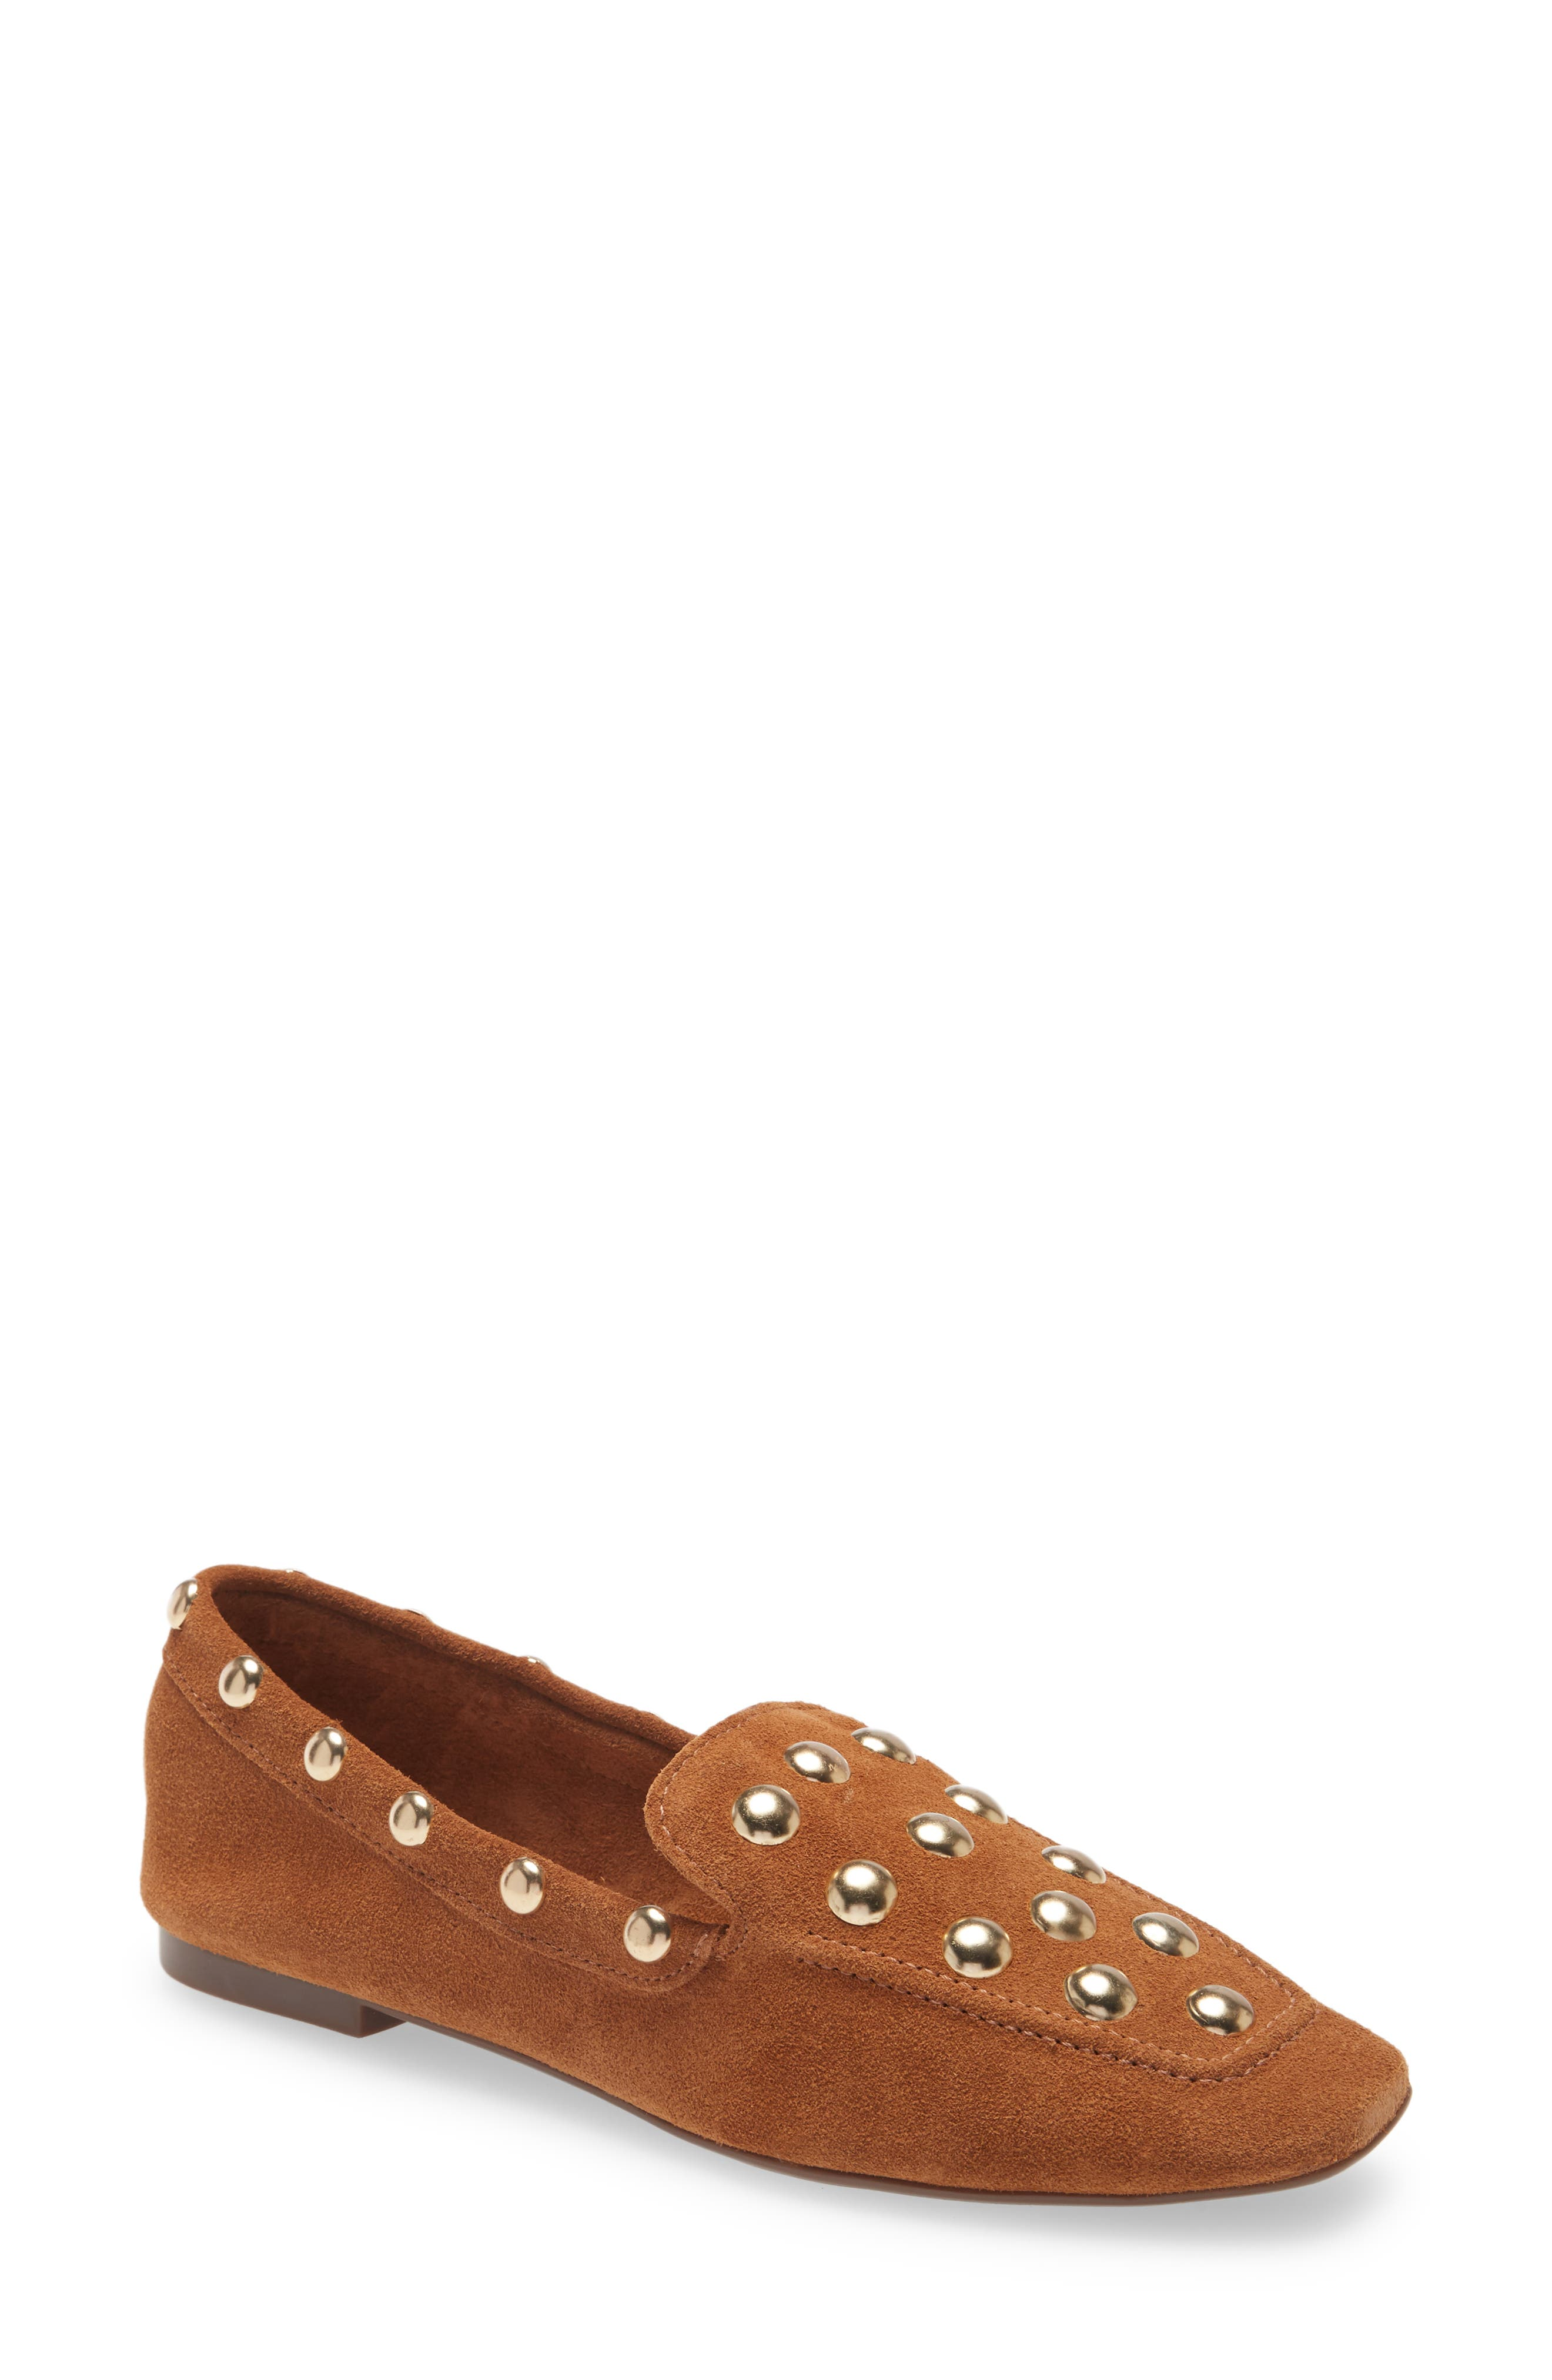 Gleaming studs bring a touch of just-right edge to a chic loafer that\\\'s a sophisticated option for your work-to-weekend wardrobe. Style Name: Schutz Laurie Studded Loafer (Women). Style Number: 6096499. Available in stores.